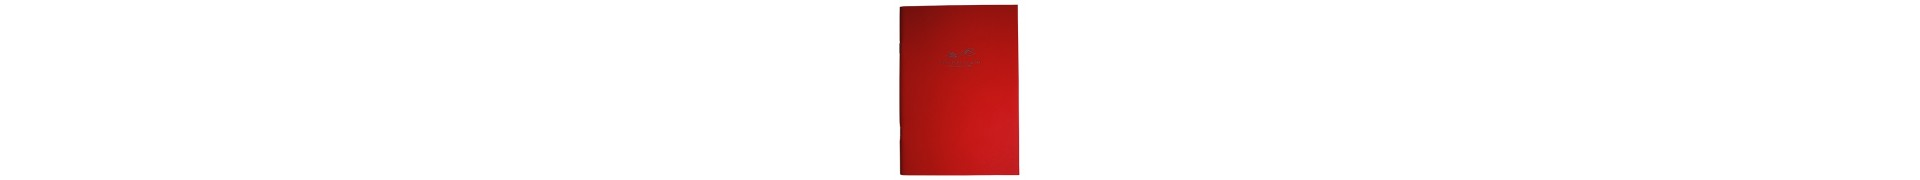 CAHIER CDQV ROUGE BRILLANT 140 Gr 14.821 20 F